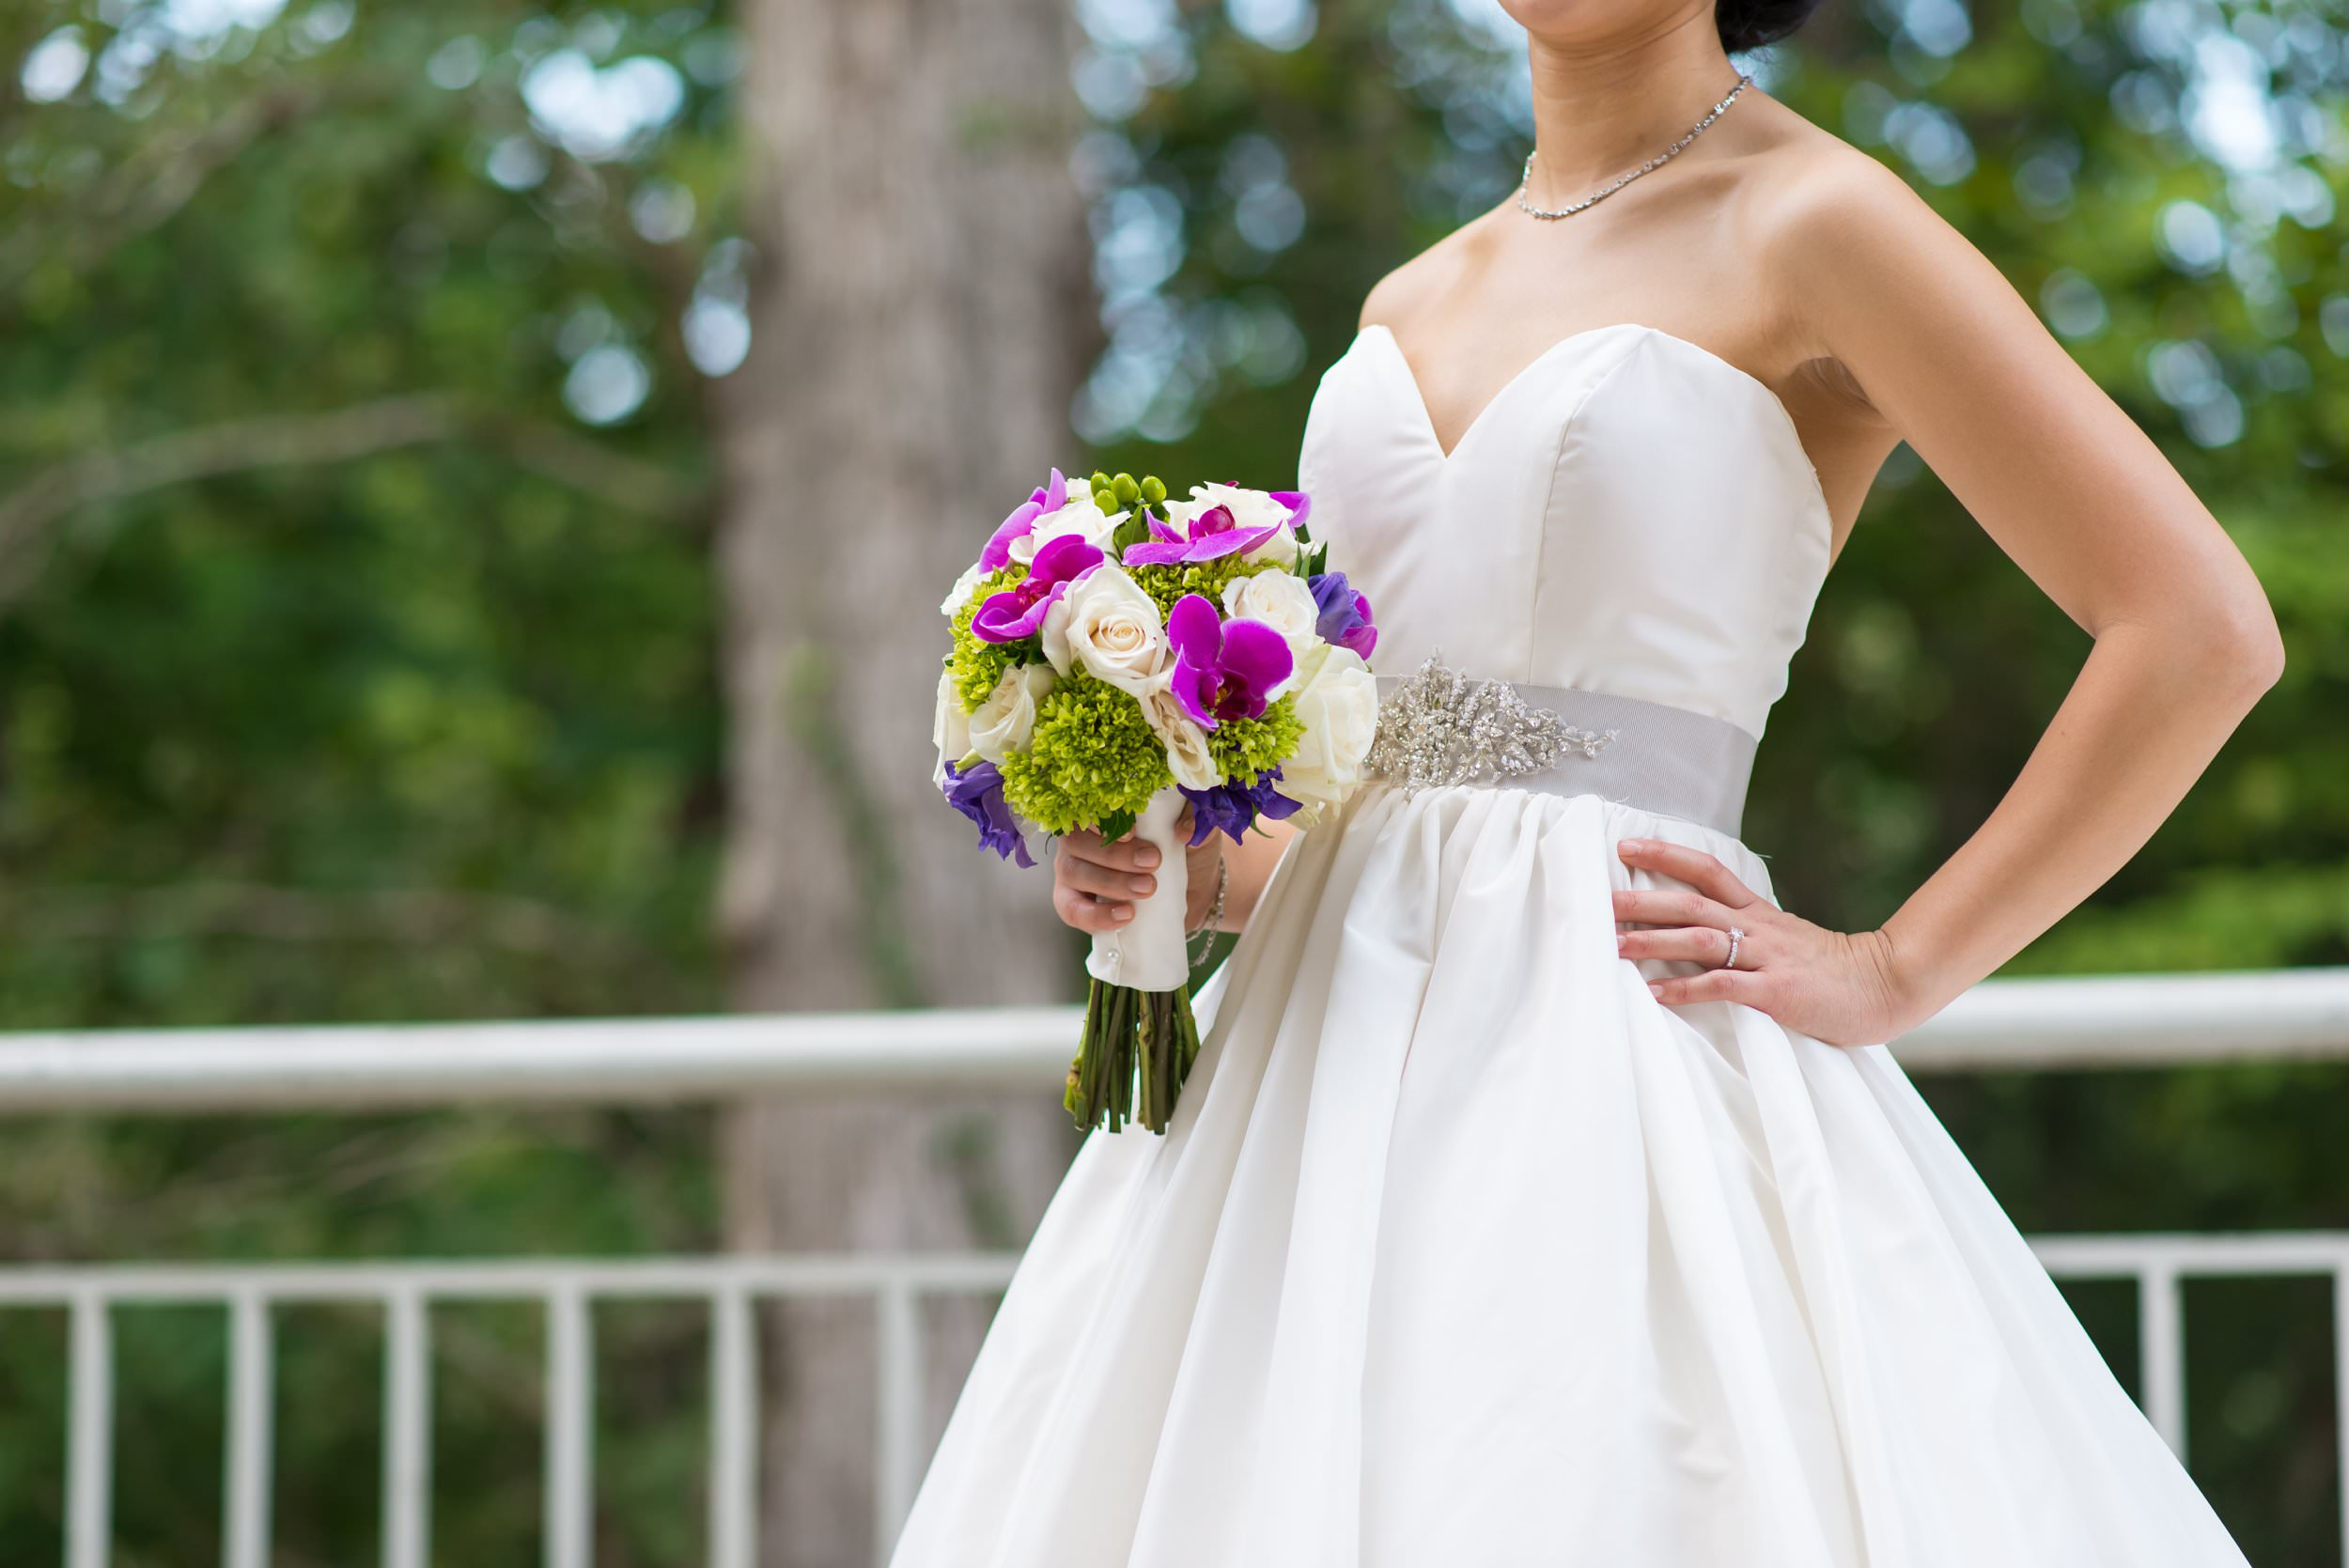 Monica's vibrant rose and orchid bouquet was the perfect contrast to her simple, elegant wedding gown. To view more jewel toned inspiration from this  Fernbank Museum wedding, click here .